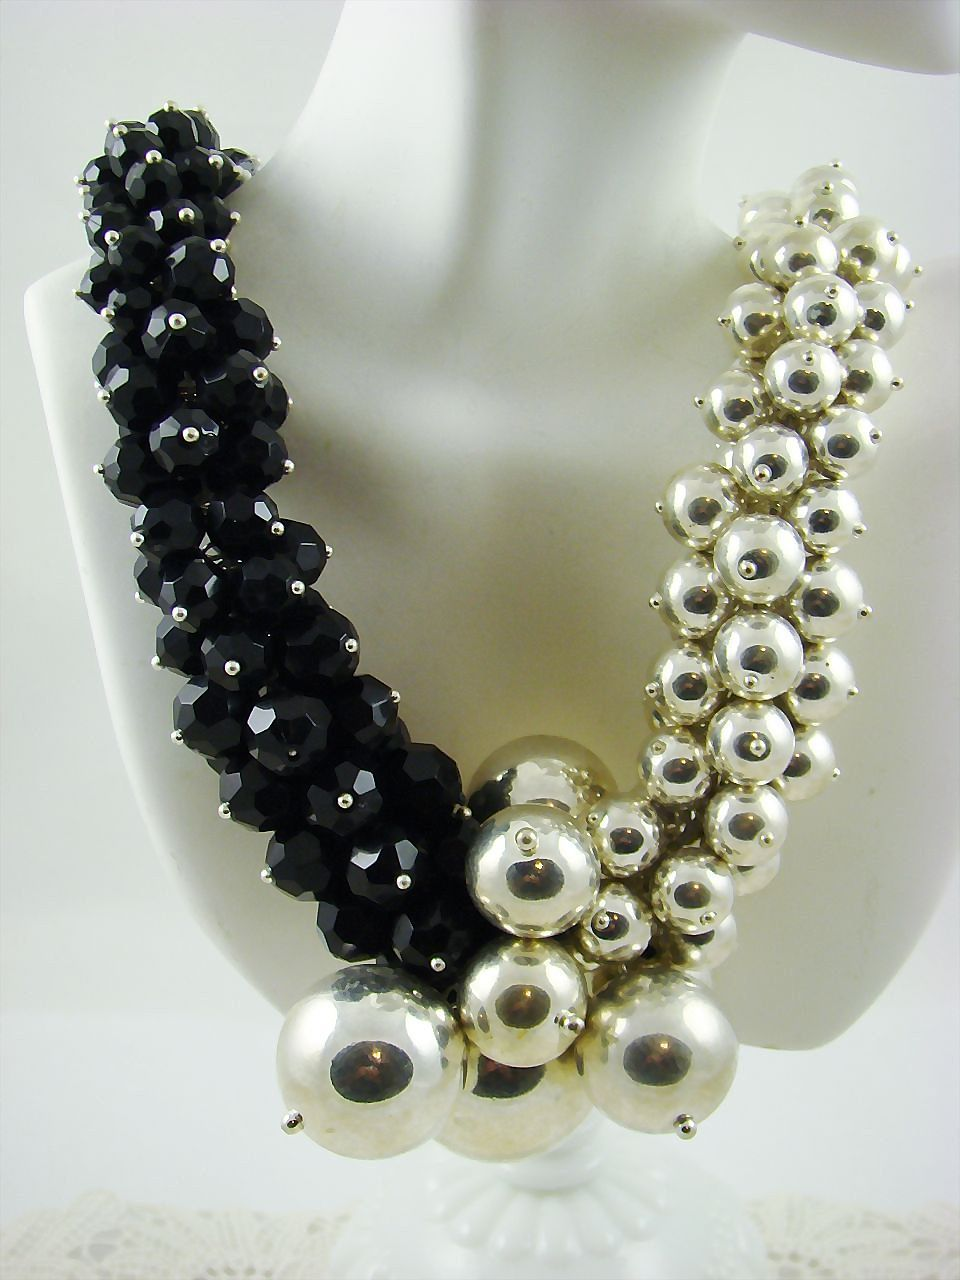 Classic Runway Necklace in Silver Tone and Black Beads